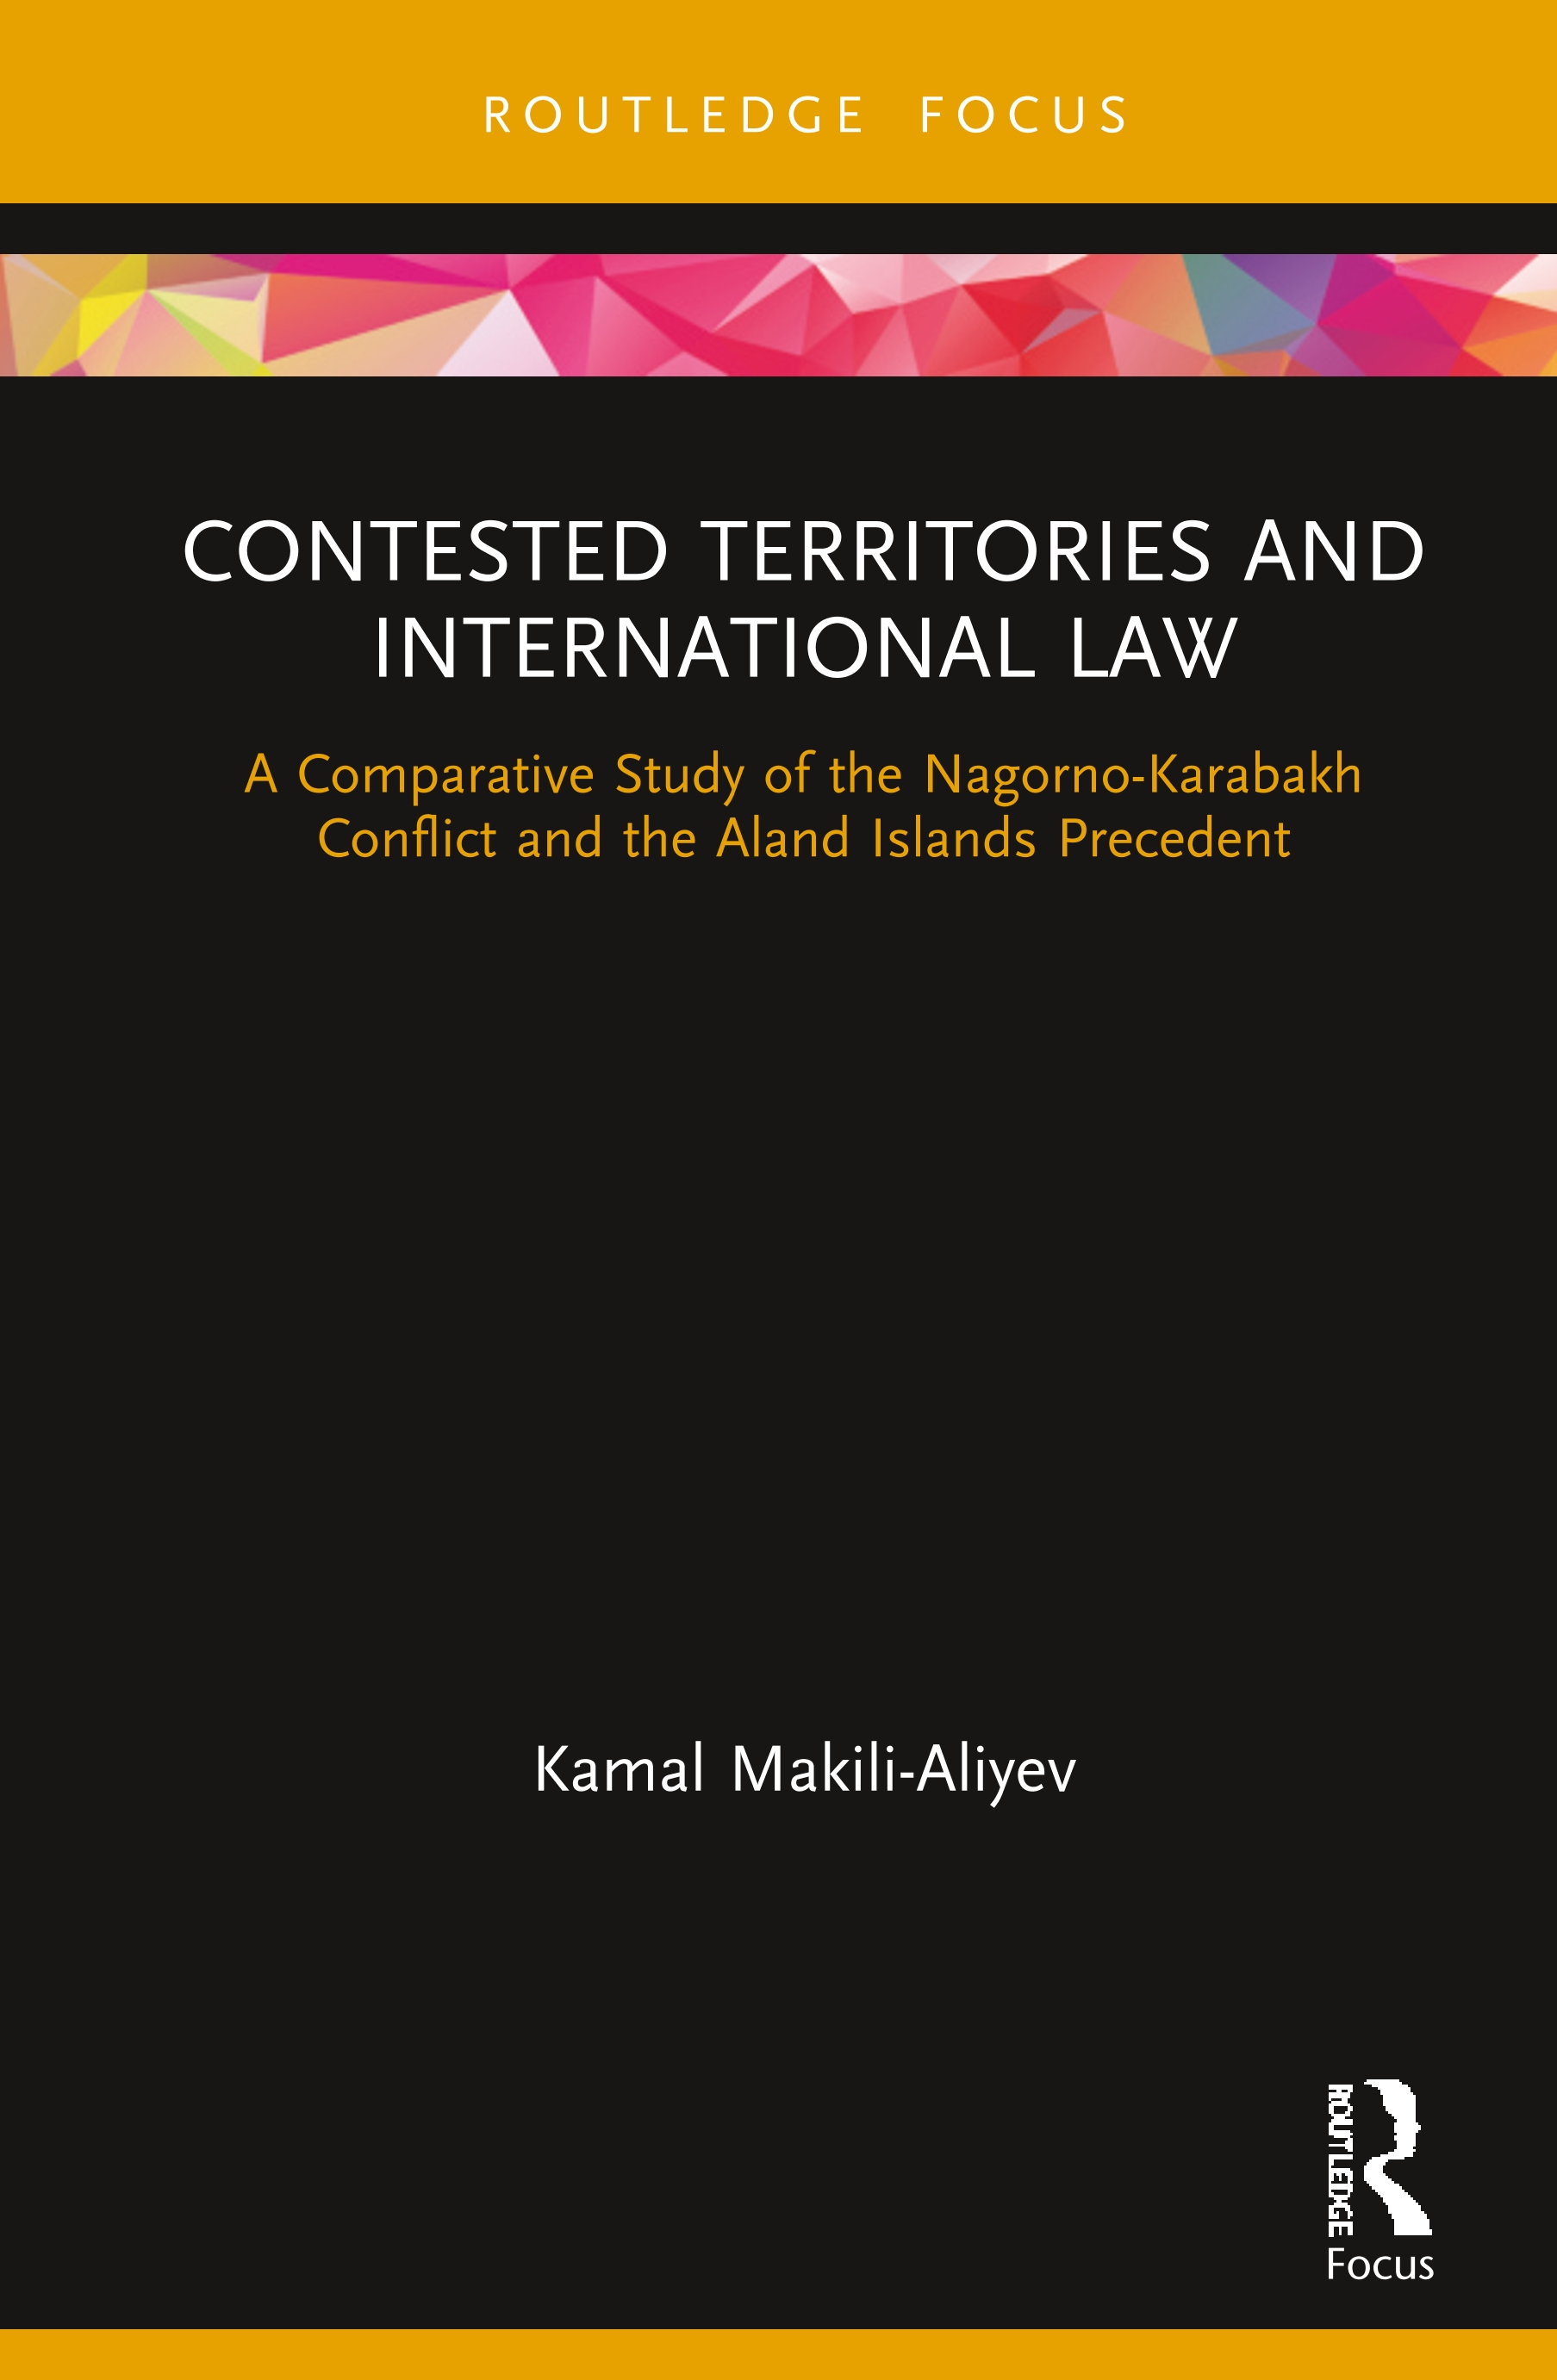 Contested Territories and International Law: A Comparative Study of the Nagorno-Karabakh Conflict and the Aland Islands Precedent book cover